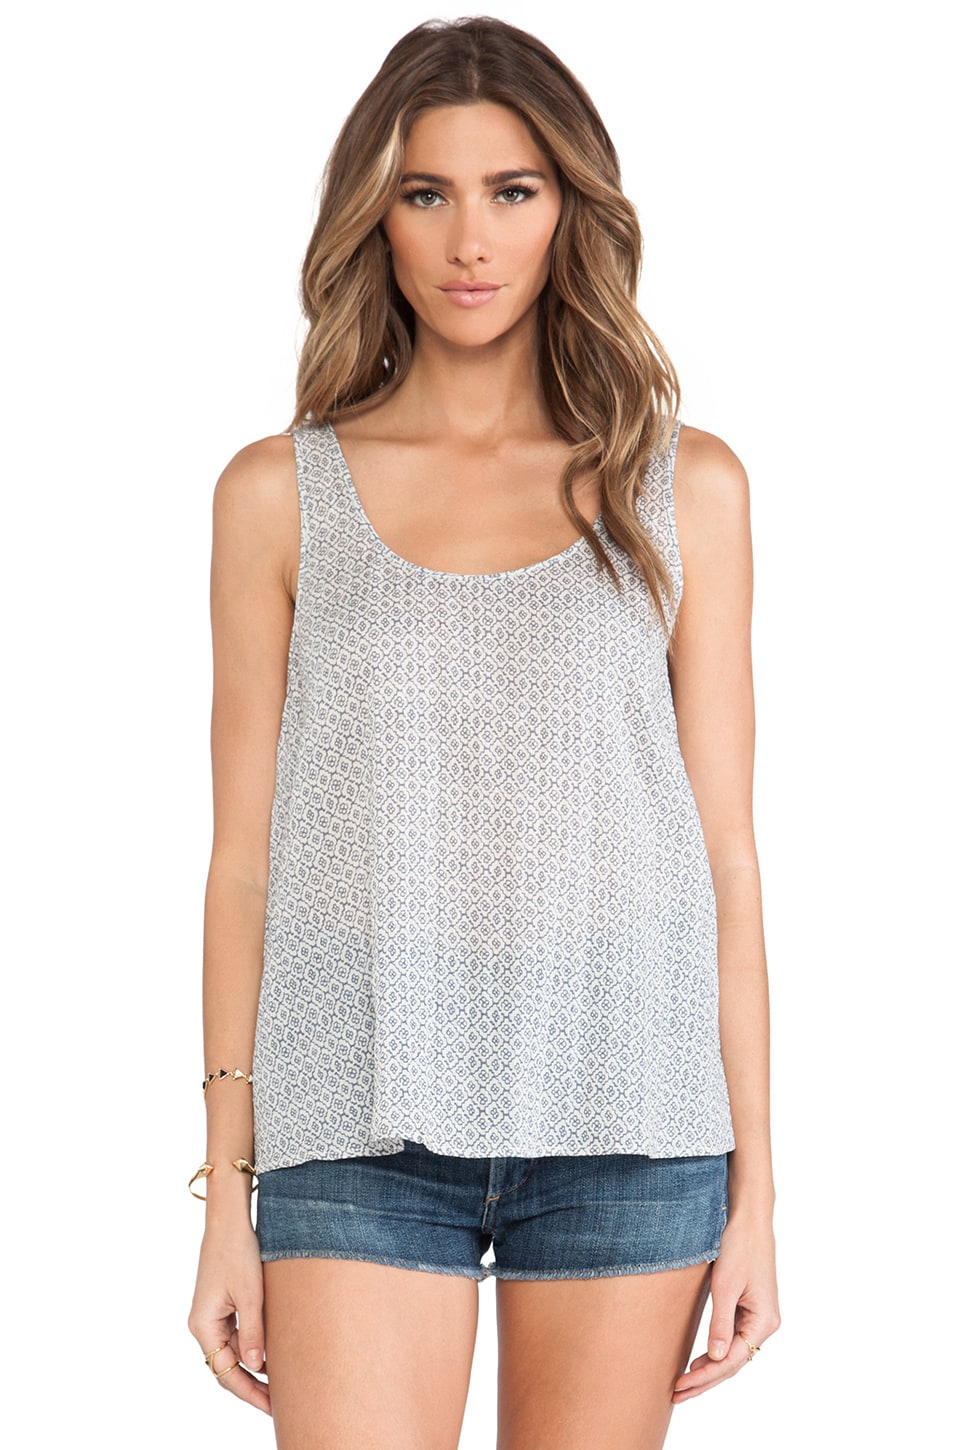 Soft Joie Jummy Tank in Off Porcelain & Dusty Blue